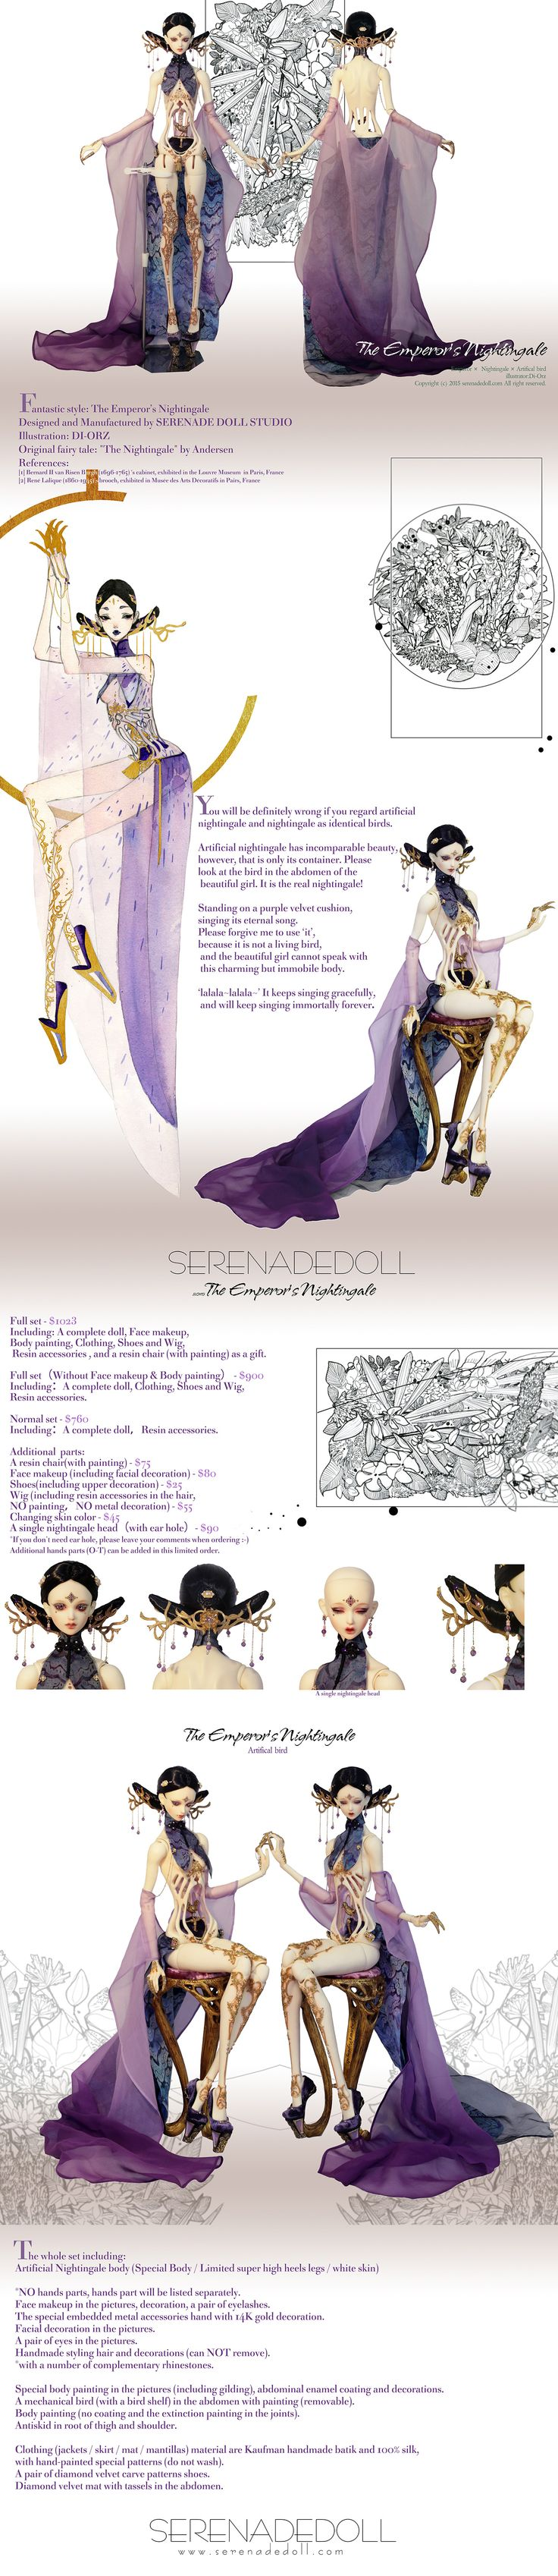 The Artificial Bird from The Emperor's Nightingale by SERENADE DOLL